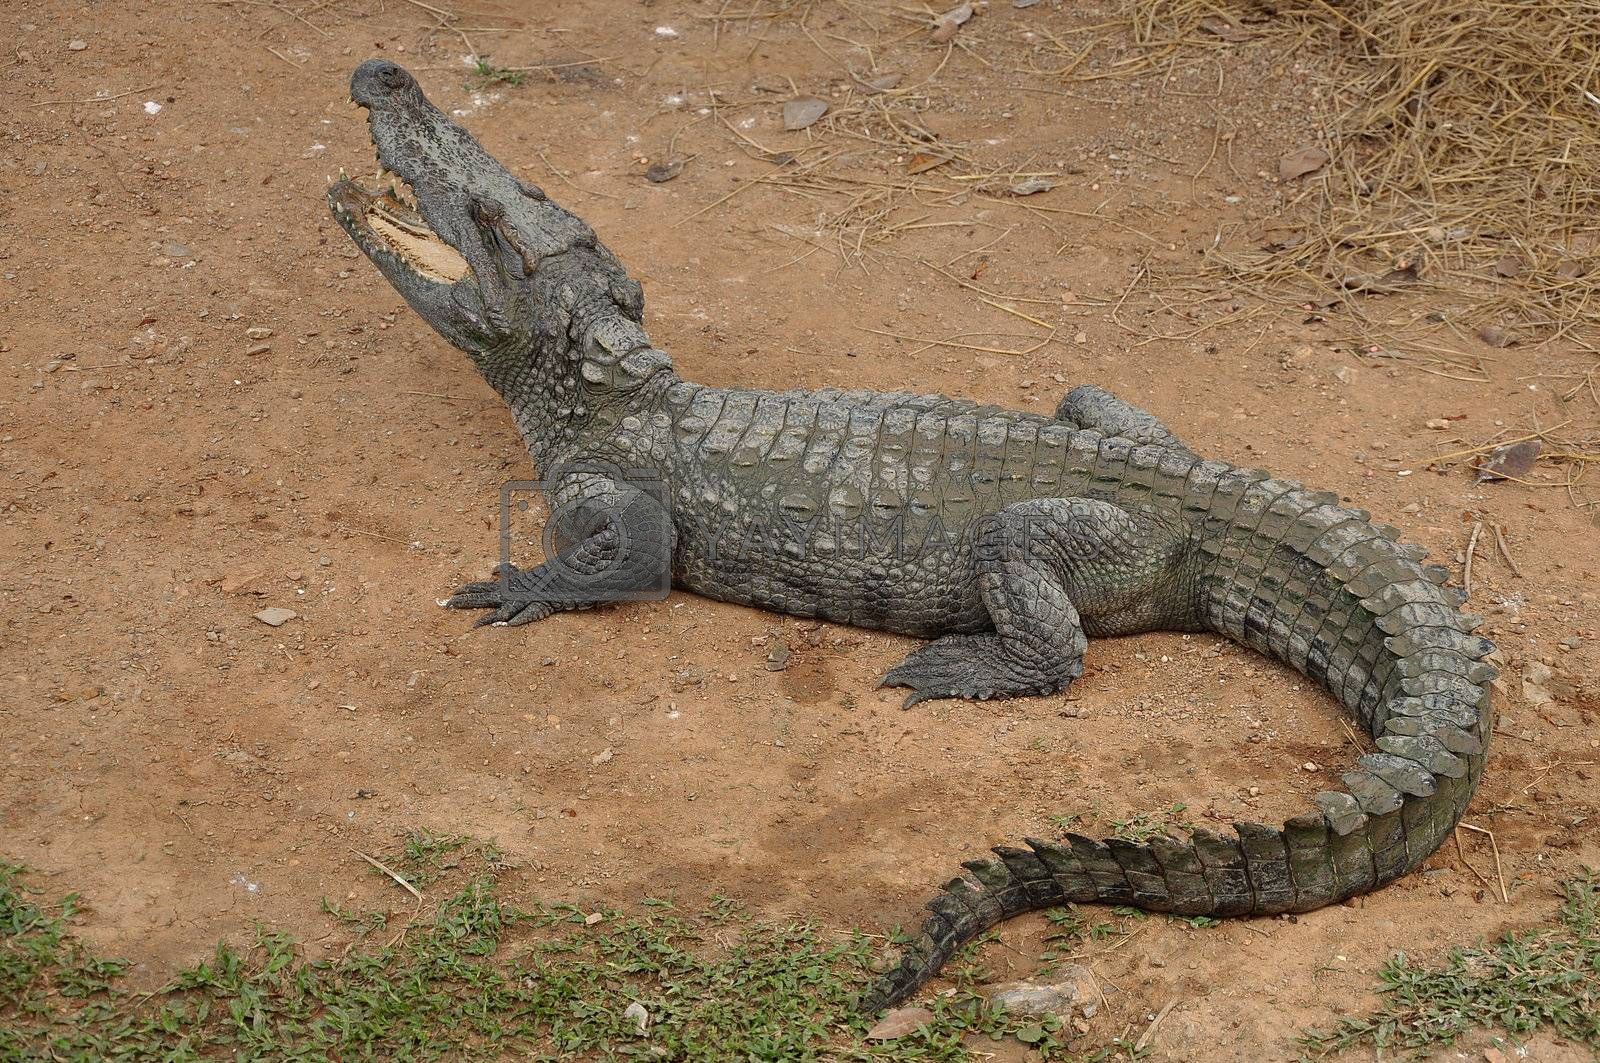 Siamese crocodile is a freshwater crocodile native to Indonesia (Borneo and possibly Java), Brunei, East Malaysia, Laos, Cambodia, Burma, Thailand, and Vietnam. The species is critically endangered and already extirpated from many regions.